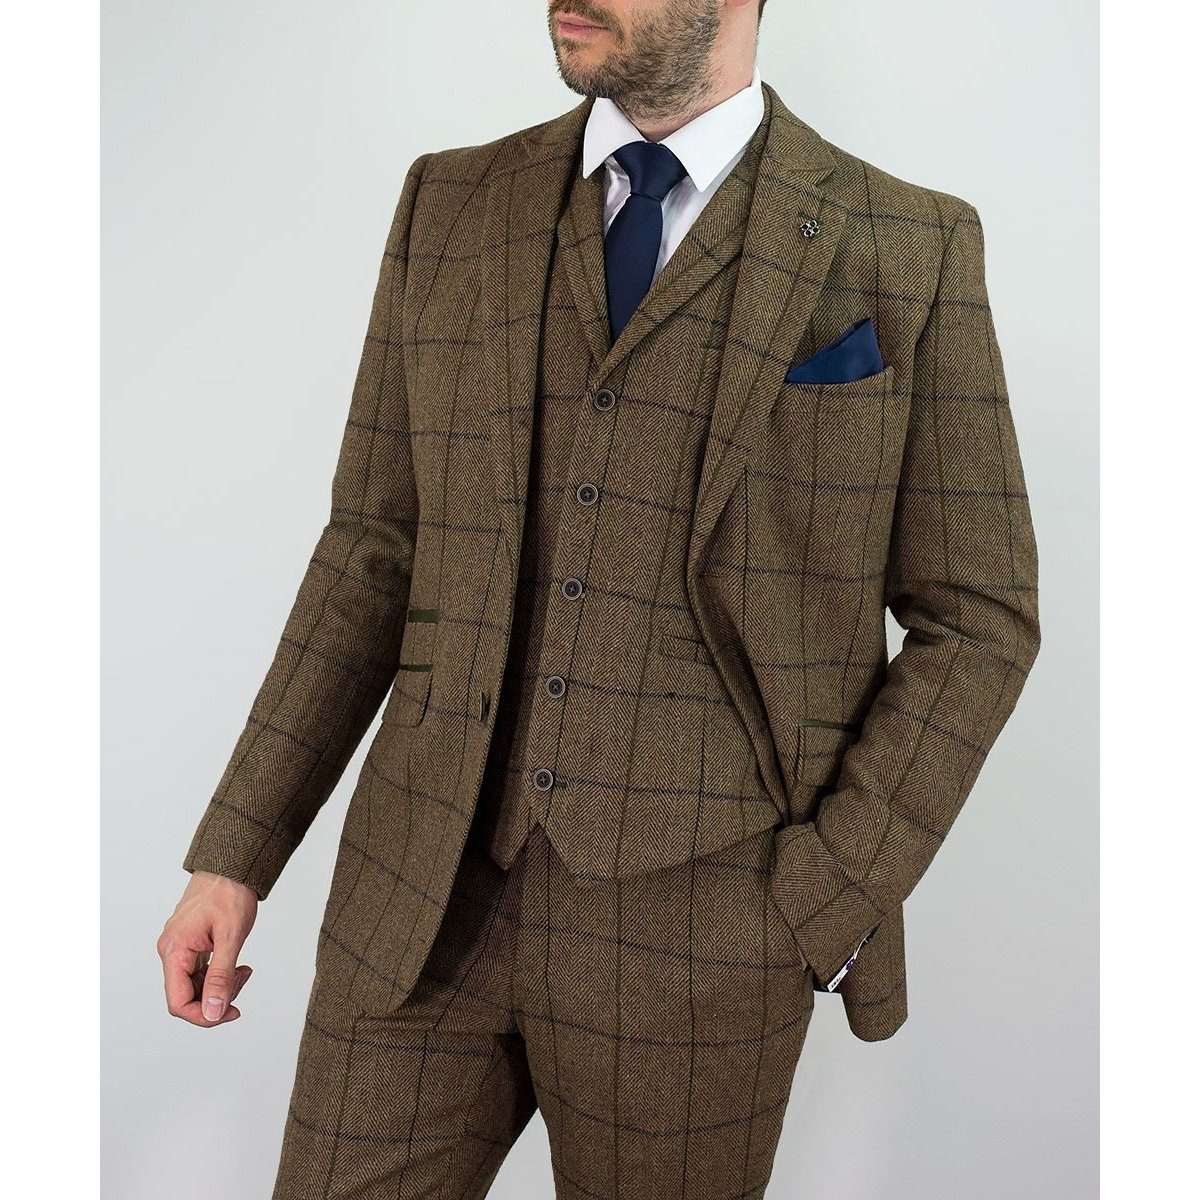 Tan Tweed Check Suit - Leonard Silver